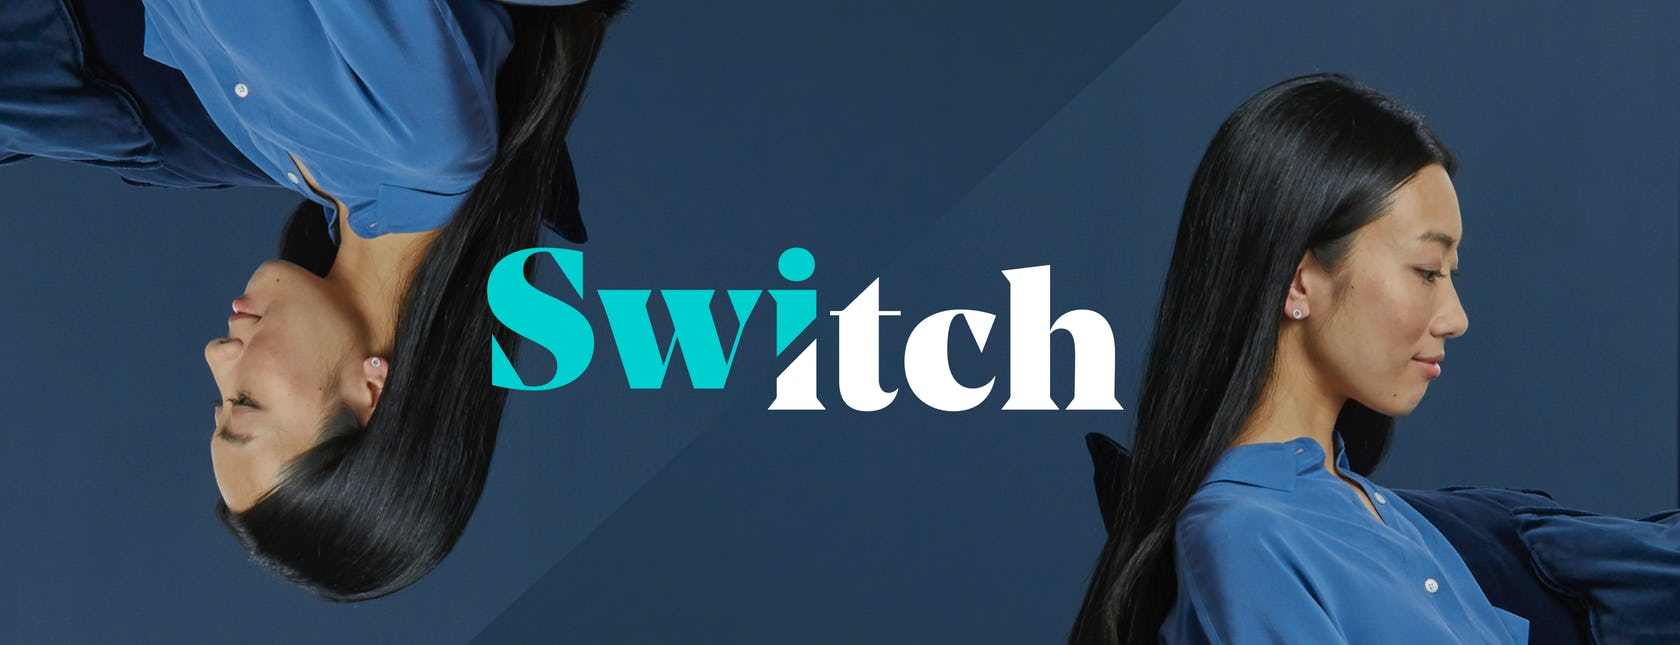 Switch by PayFit.